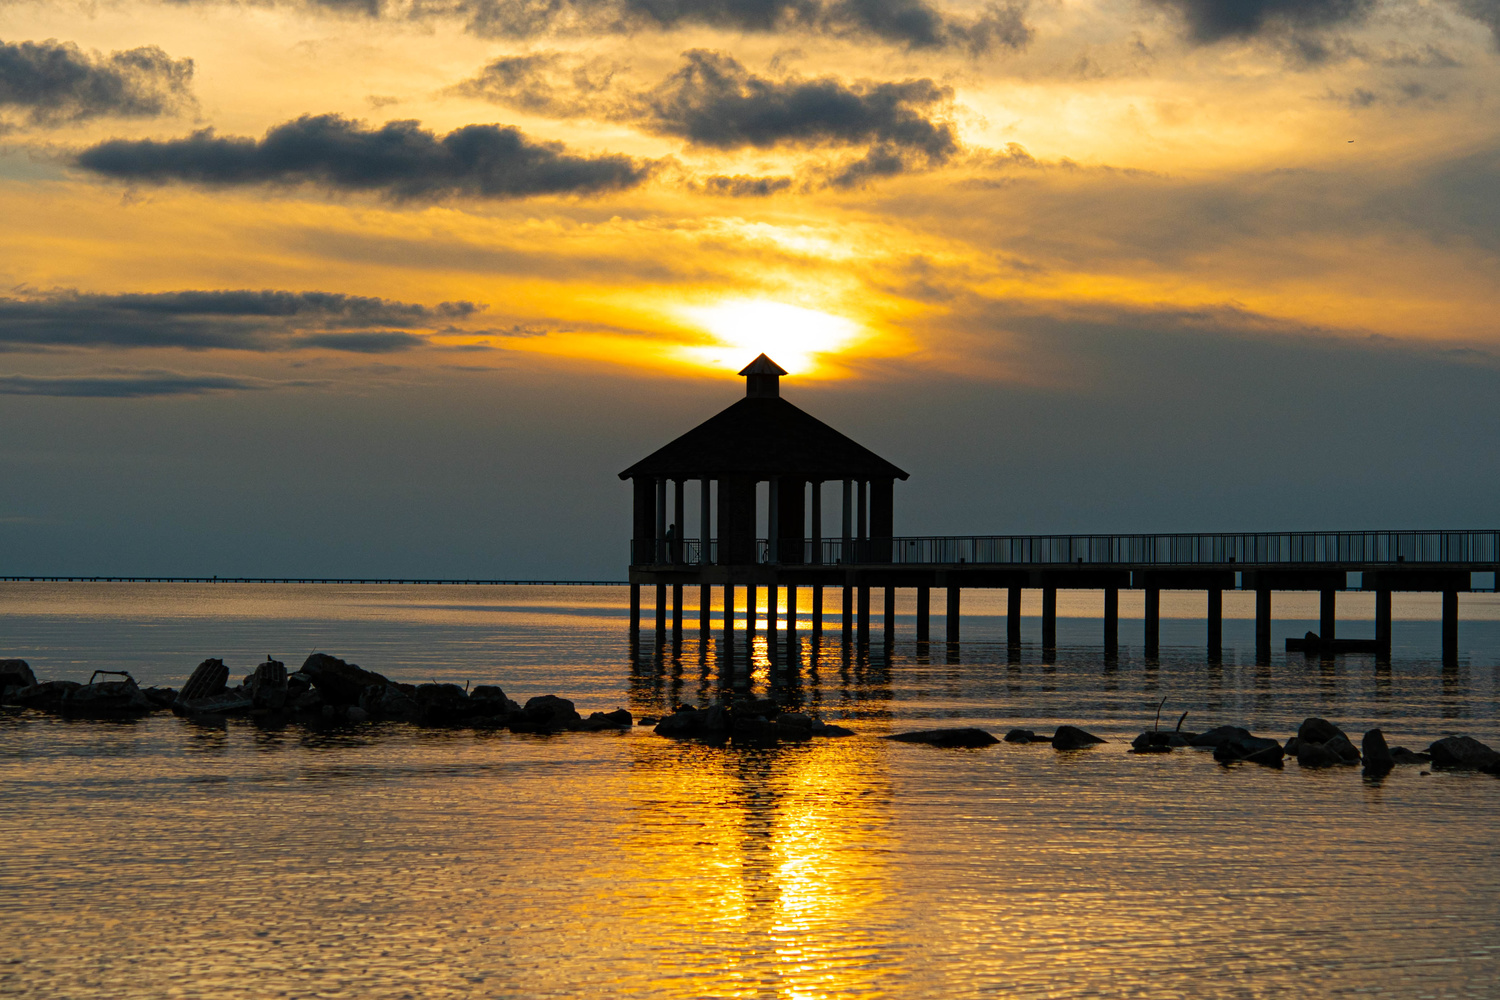 Fontainebleau State Park Pier at Sunset by Joey Hamner